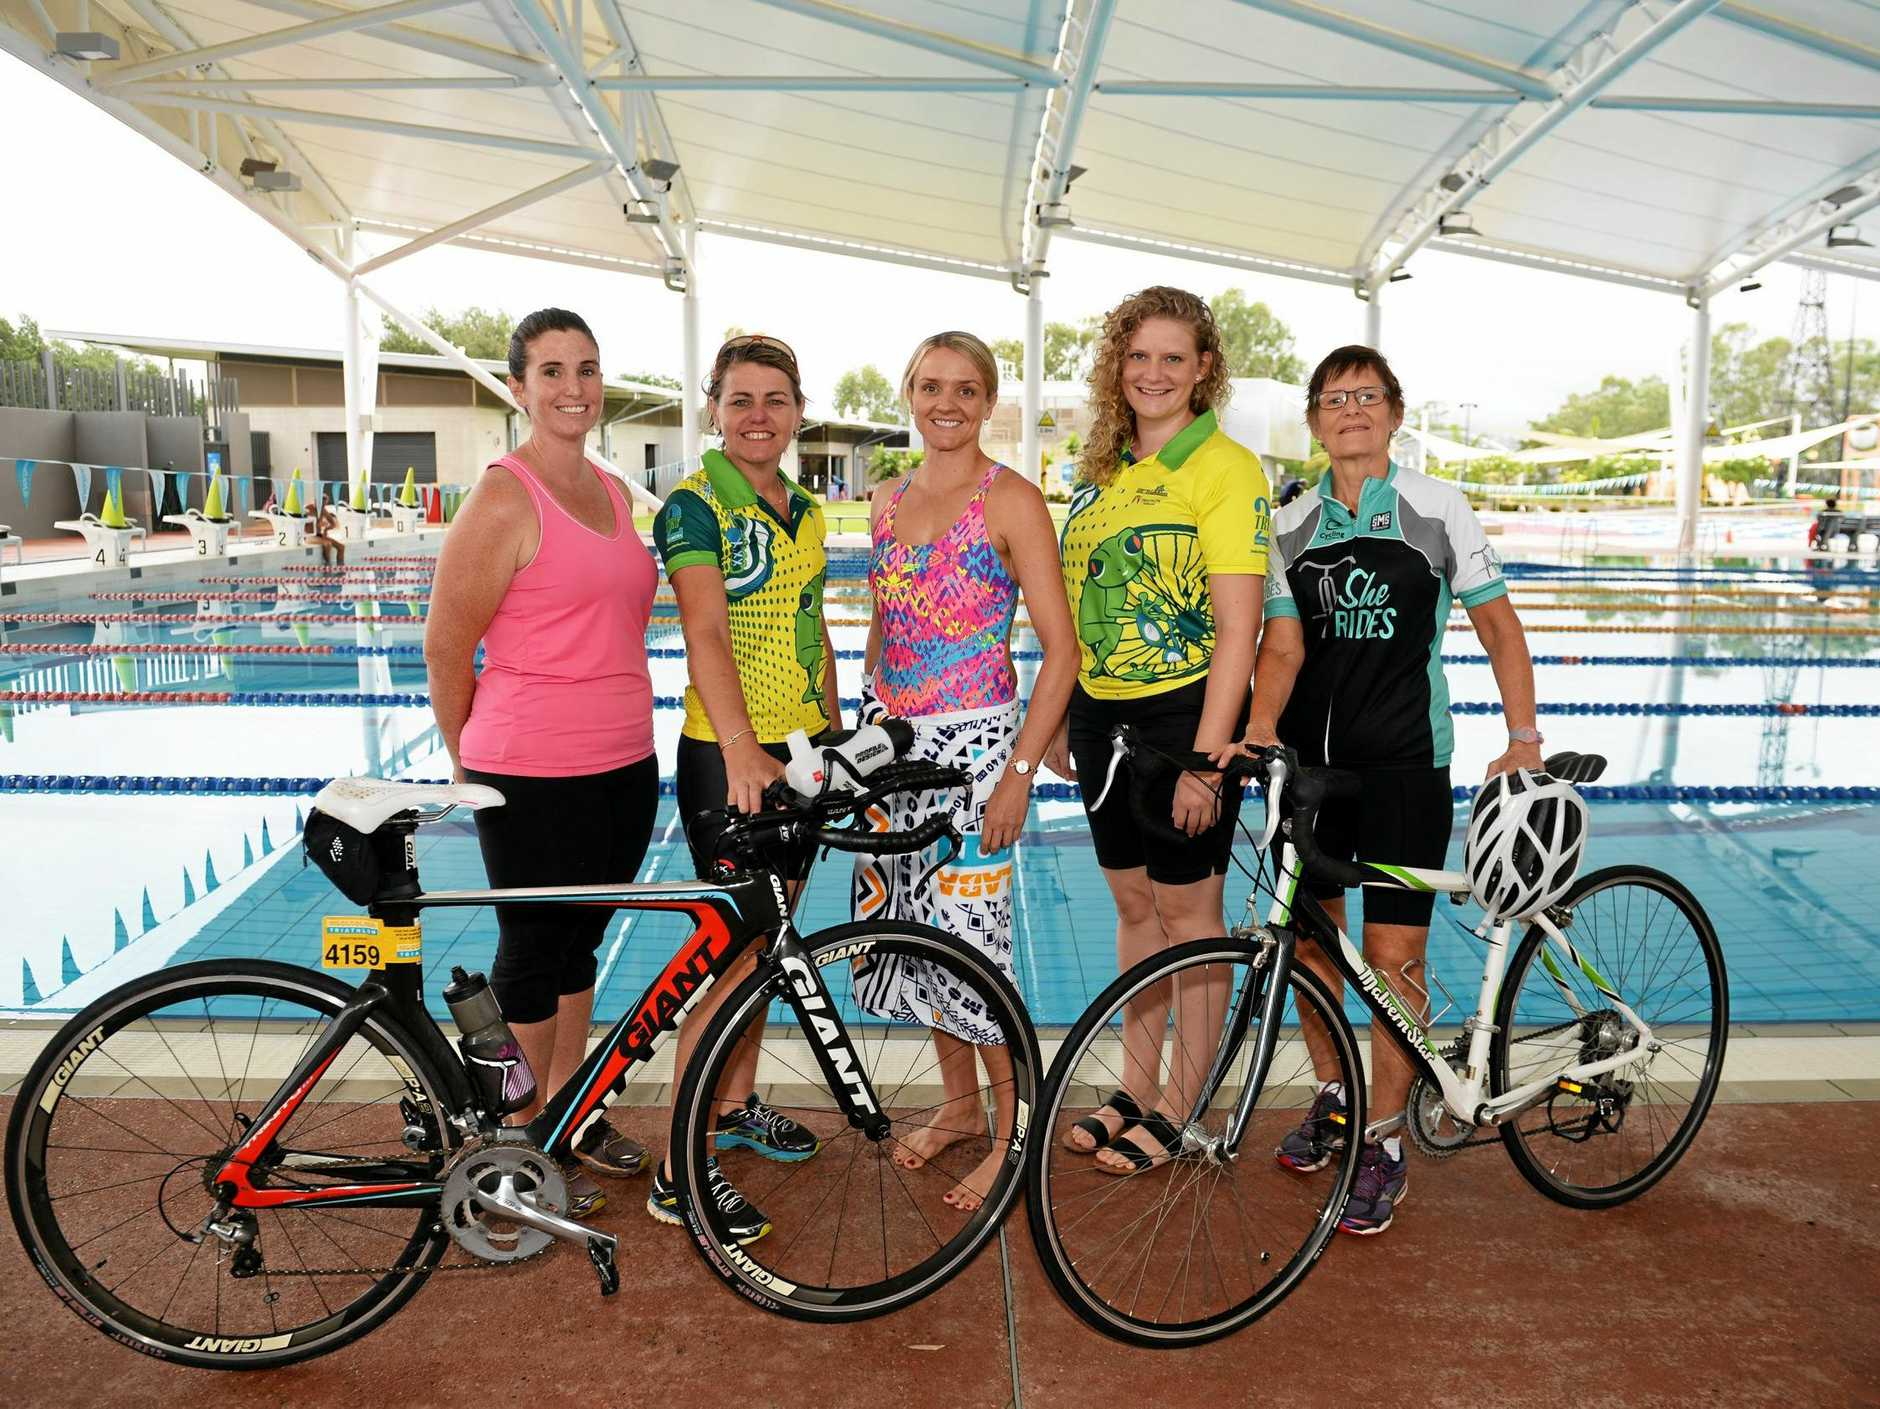 SWIM, RIDE, RUN: Jade Campbell, Veronica Mills, Kirrily Stewart, Kristina Sand and Karen Arnold will compete in the Fitzroy Frogs women's only triathlon in Rockhampton on Sunday.